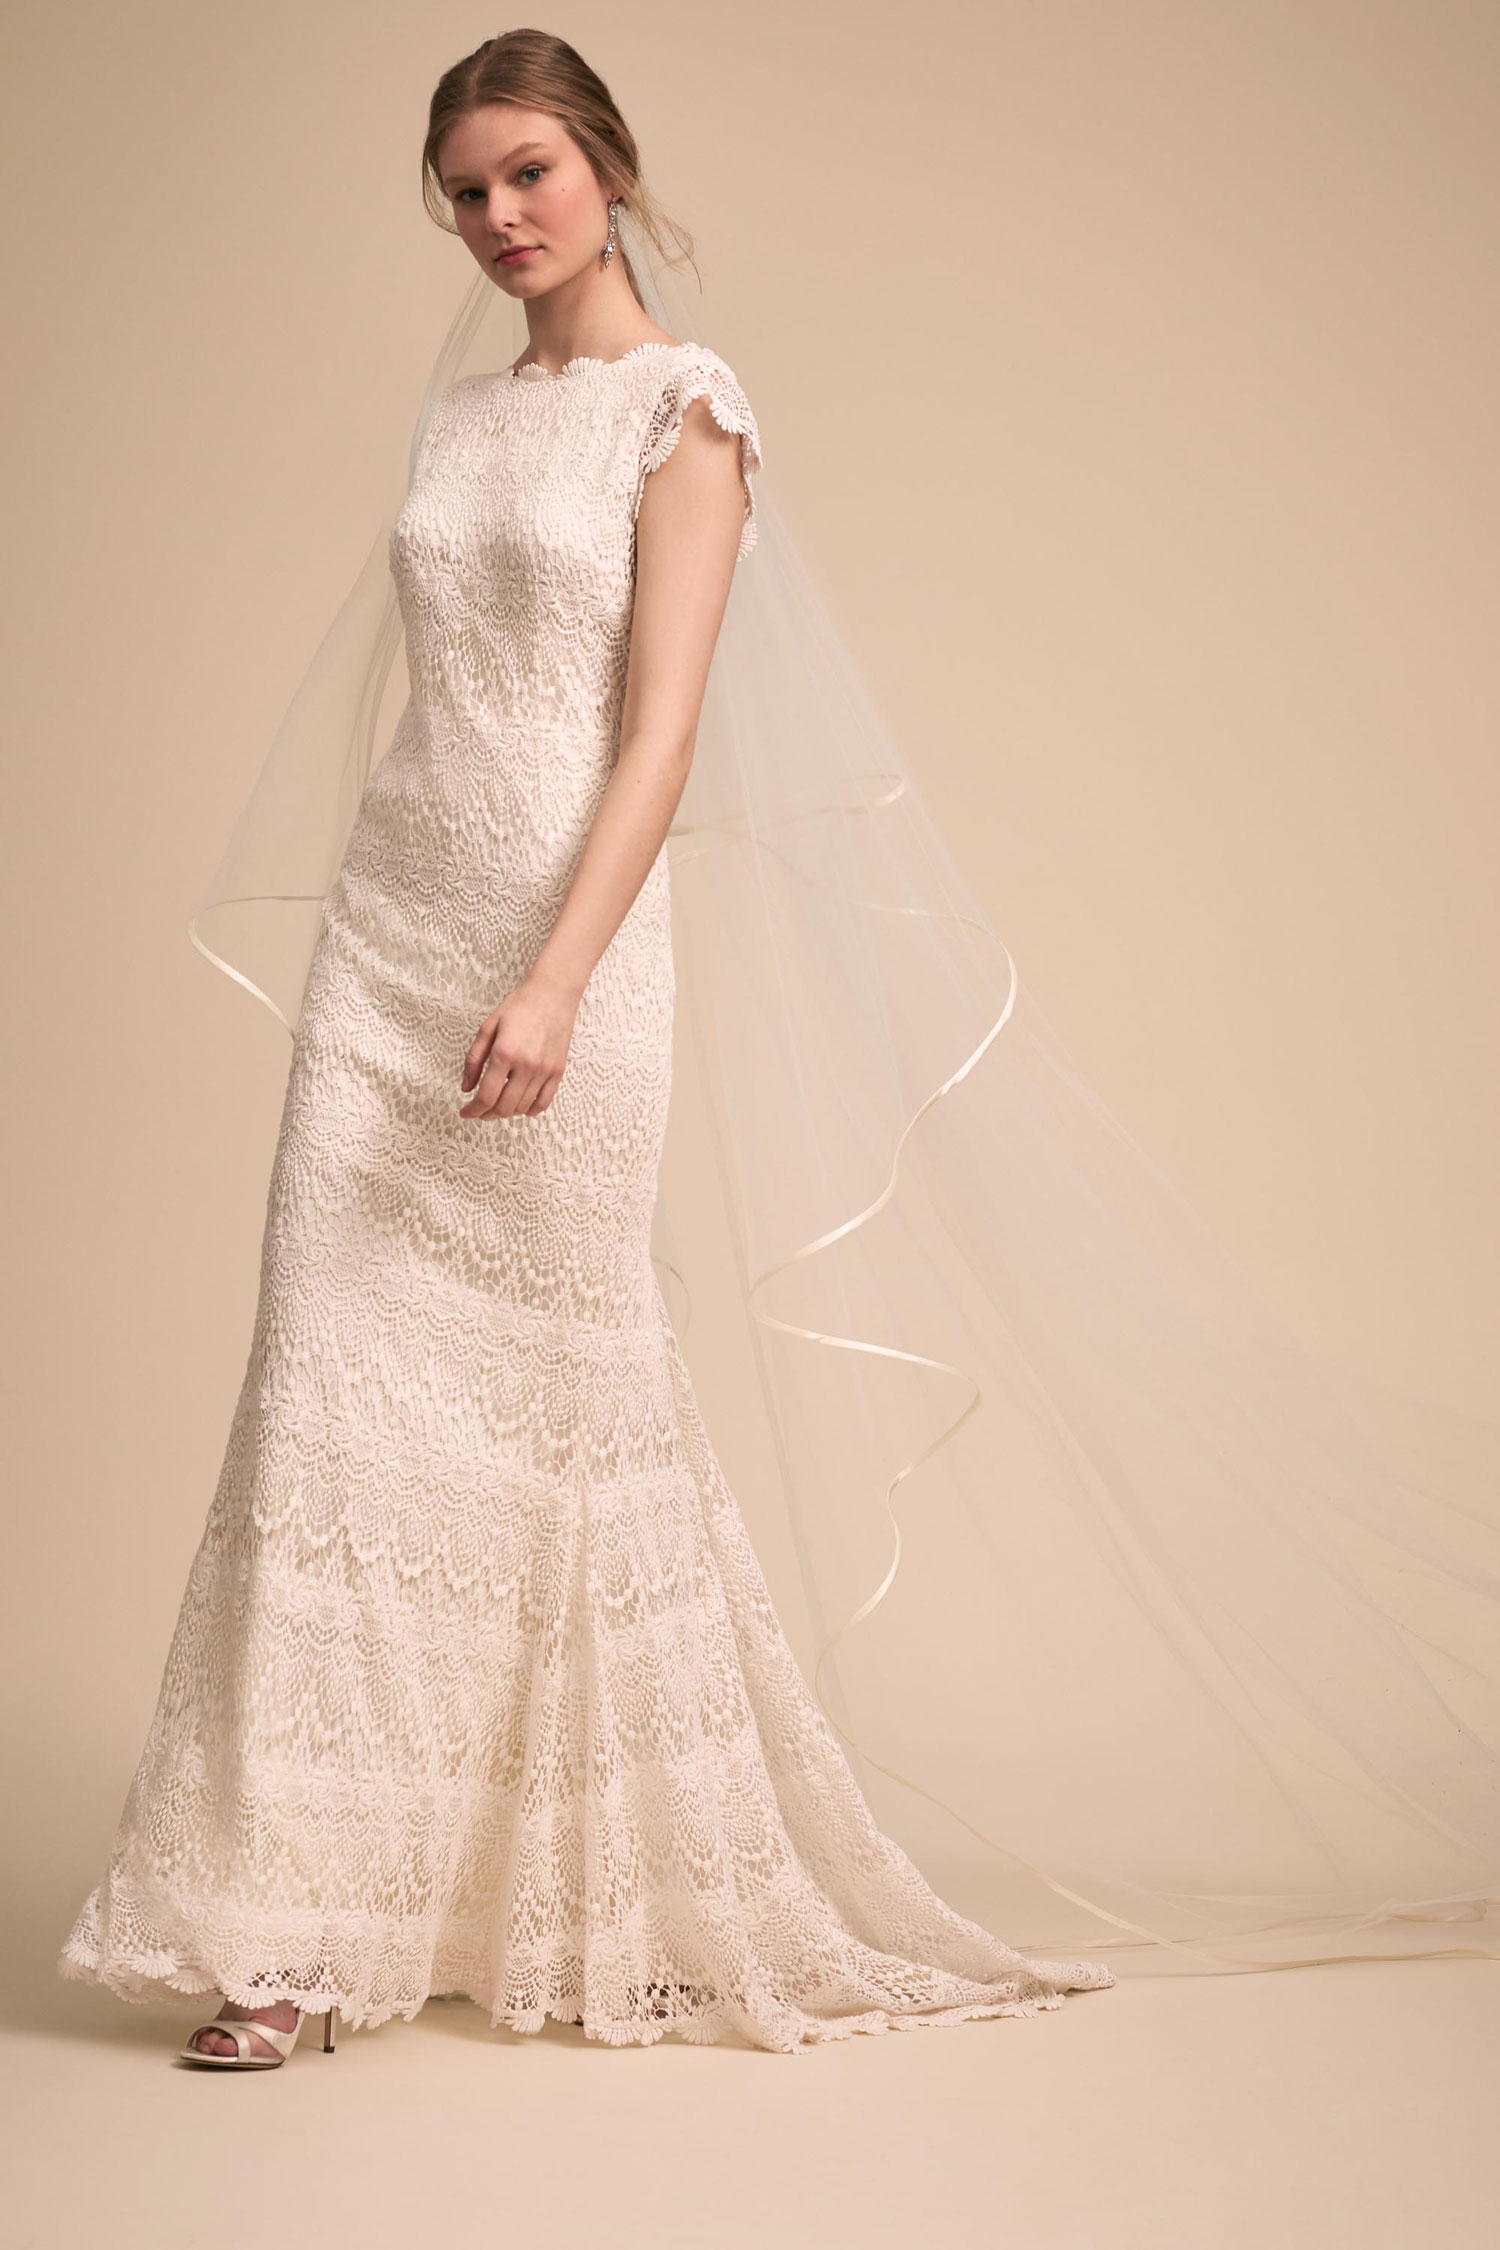 BHLDN The Designer Collective Piper by Daughters of Simone high neck lace wedding dress